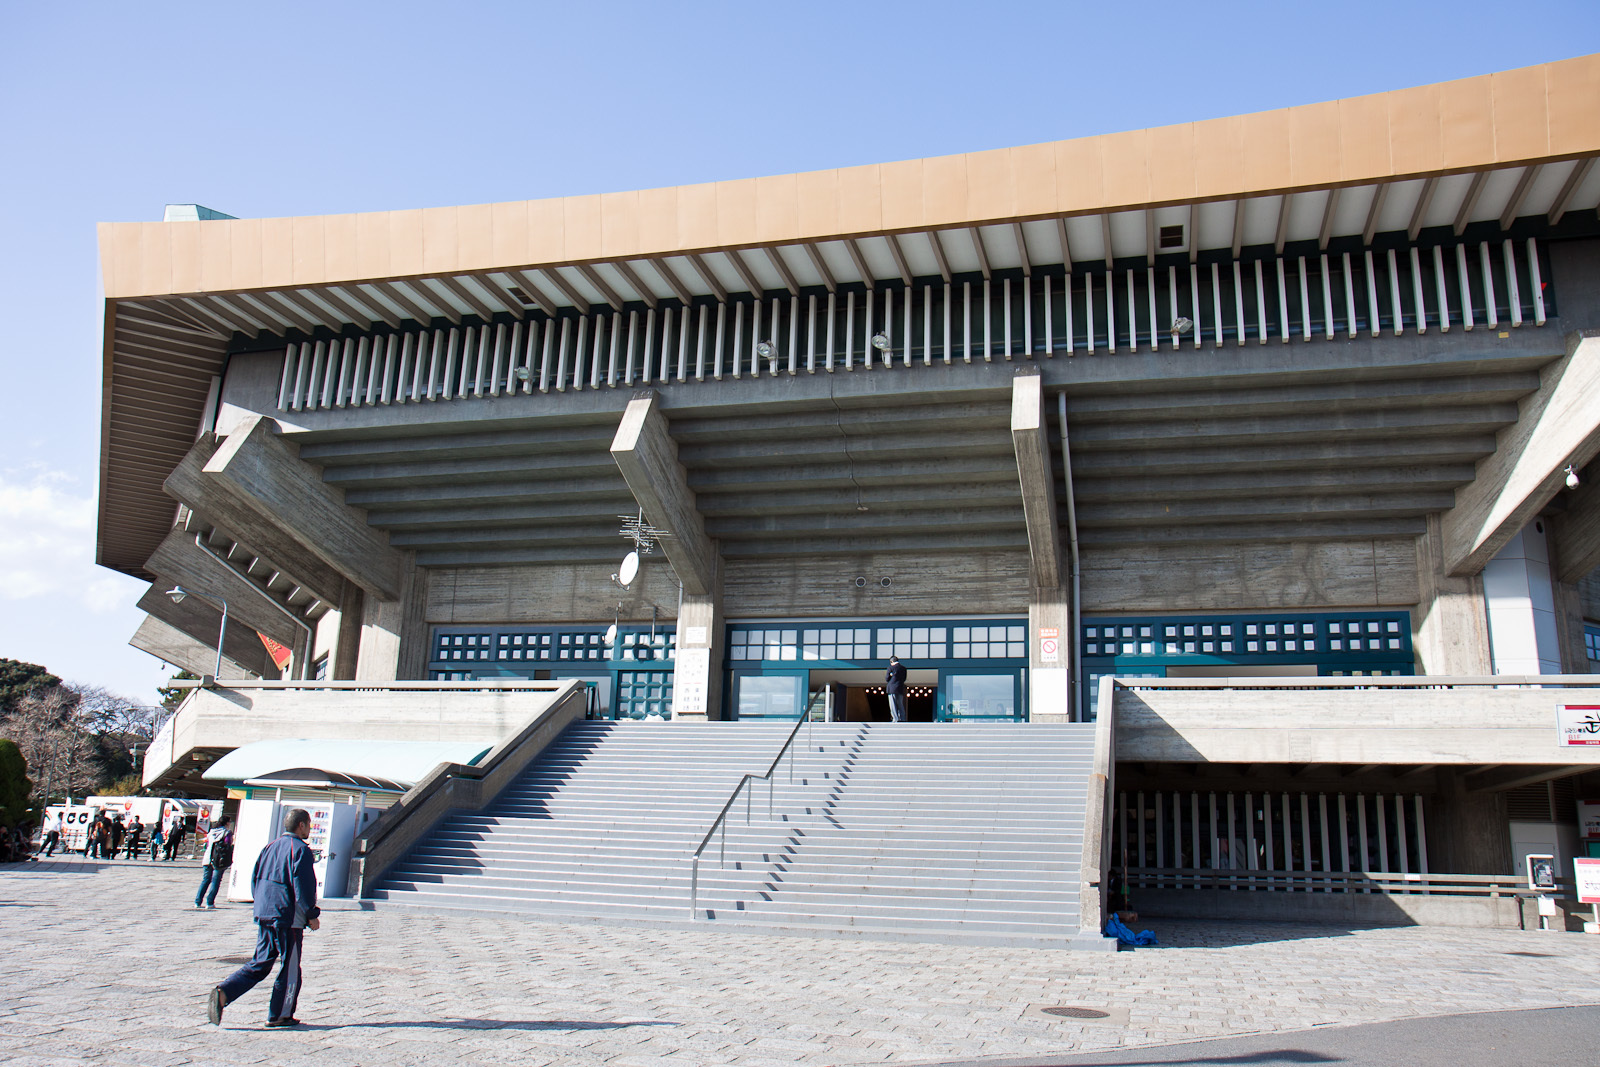 The Nippon Budokan is an arena in central Tokyo, Japan.